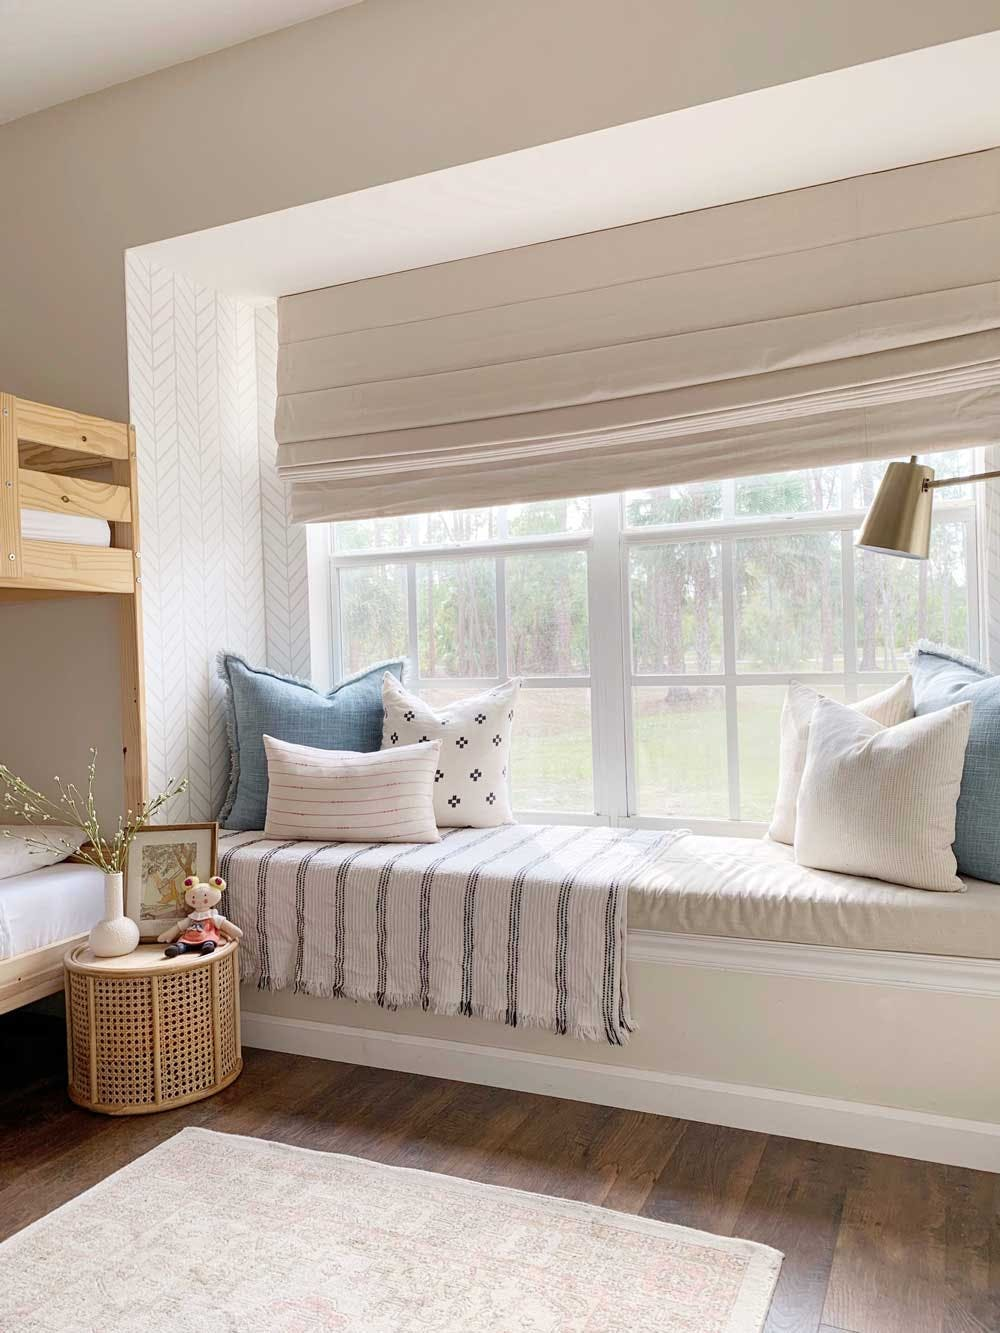 window seat with roman shade in bedroom